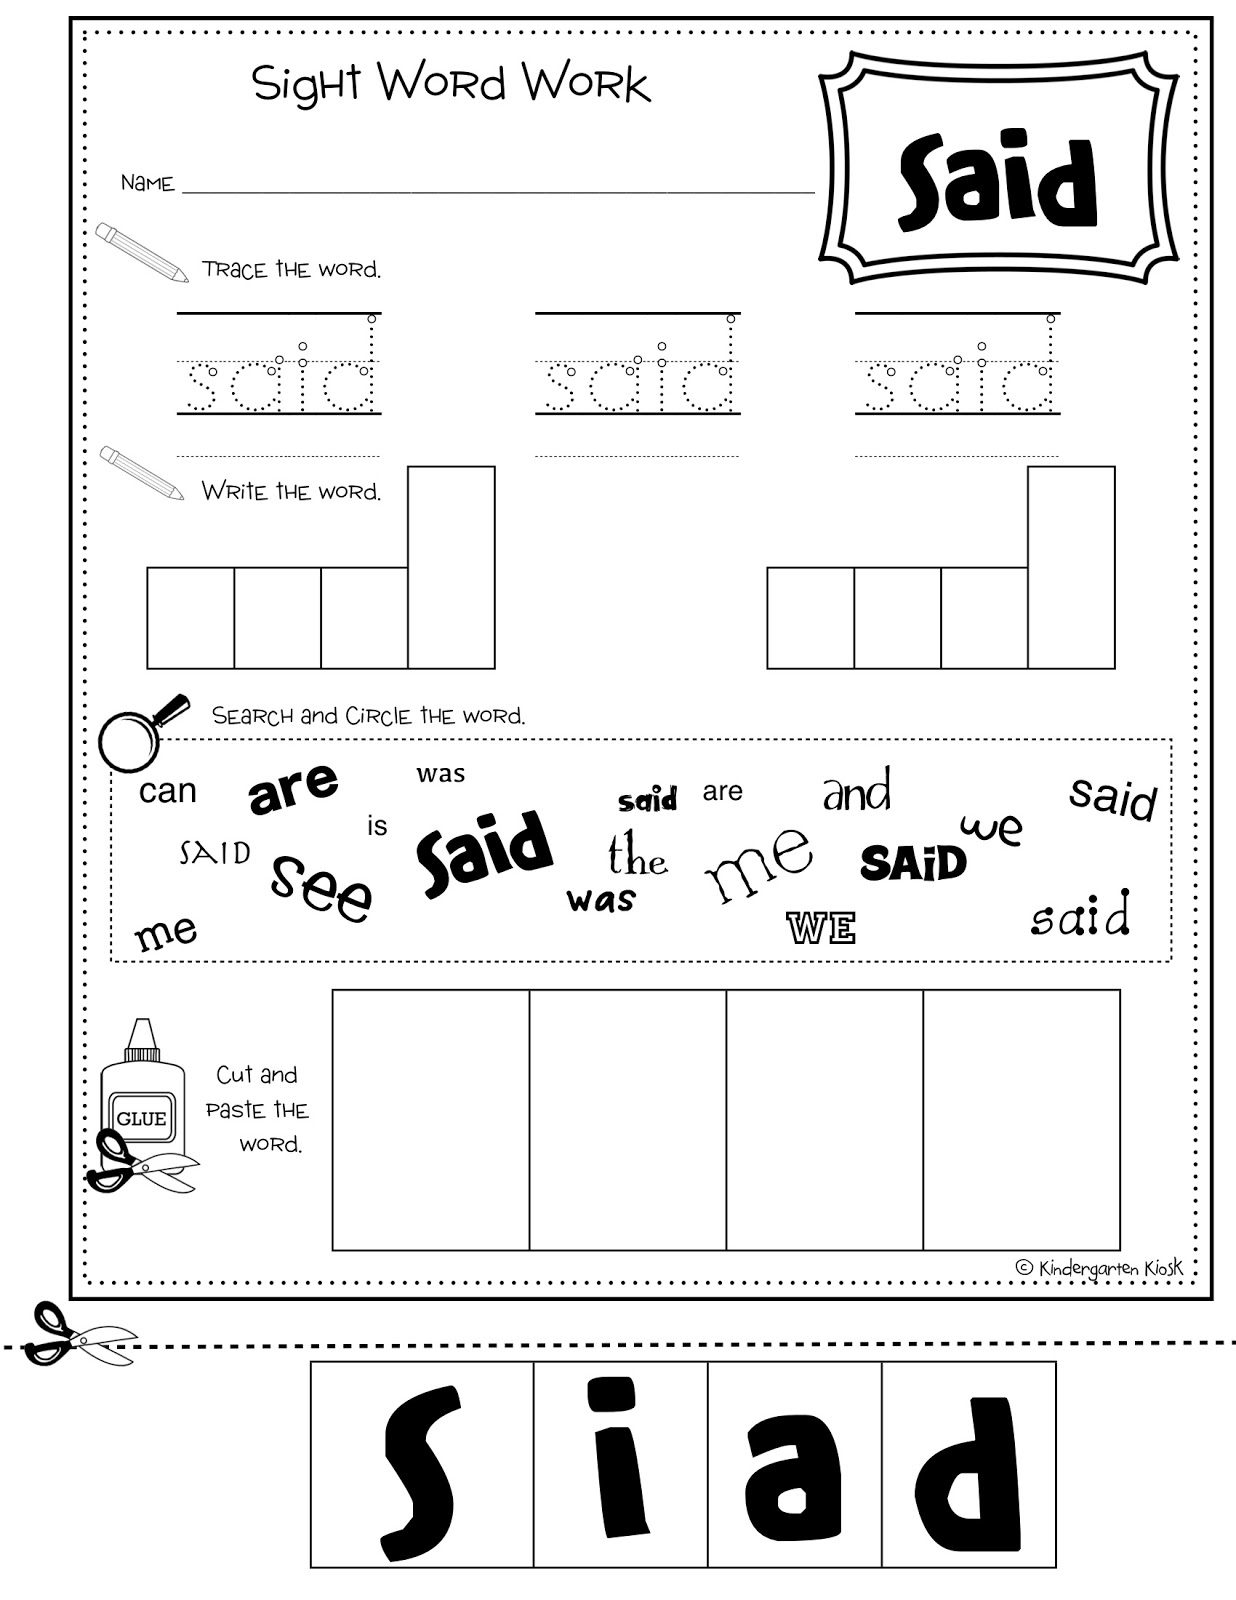 word Sight center Task worksheets Word Multi  Workbook Kindergarten sight Kiosk: